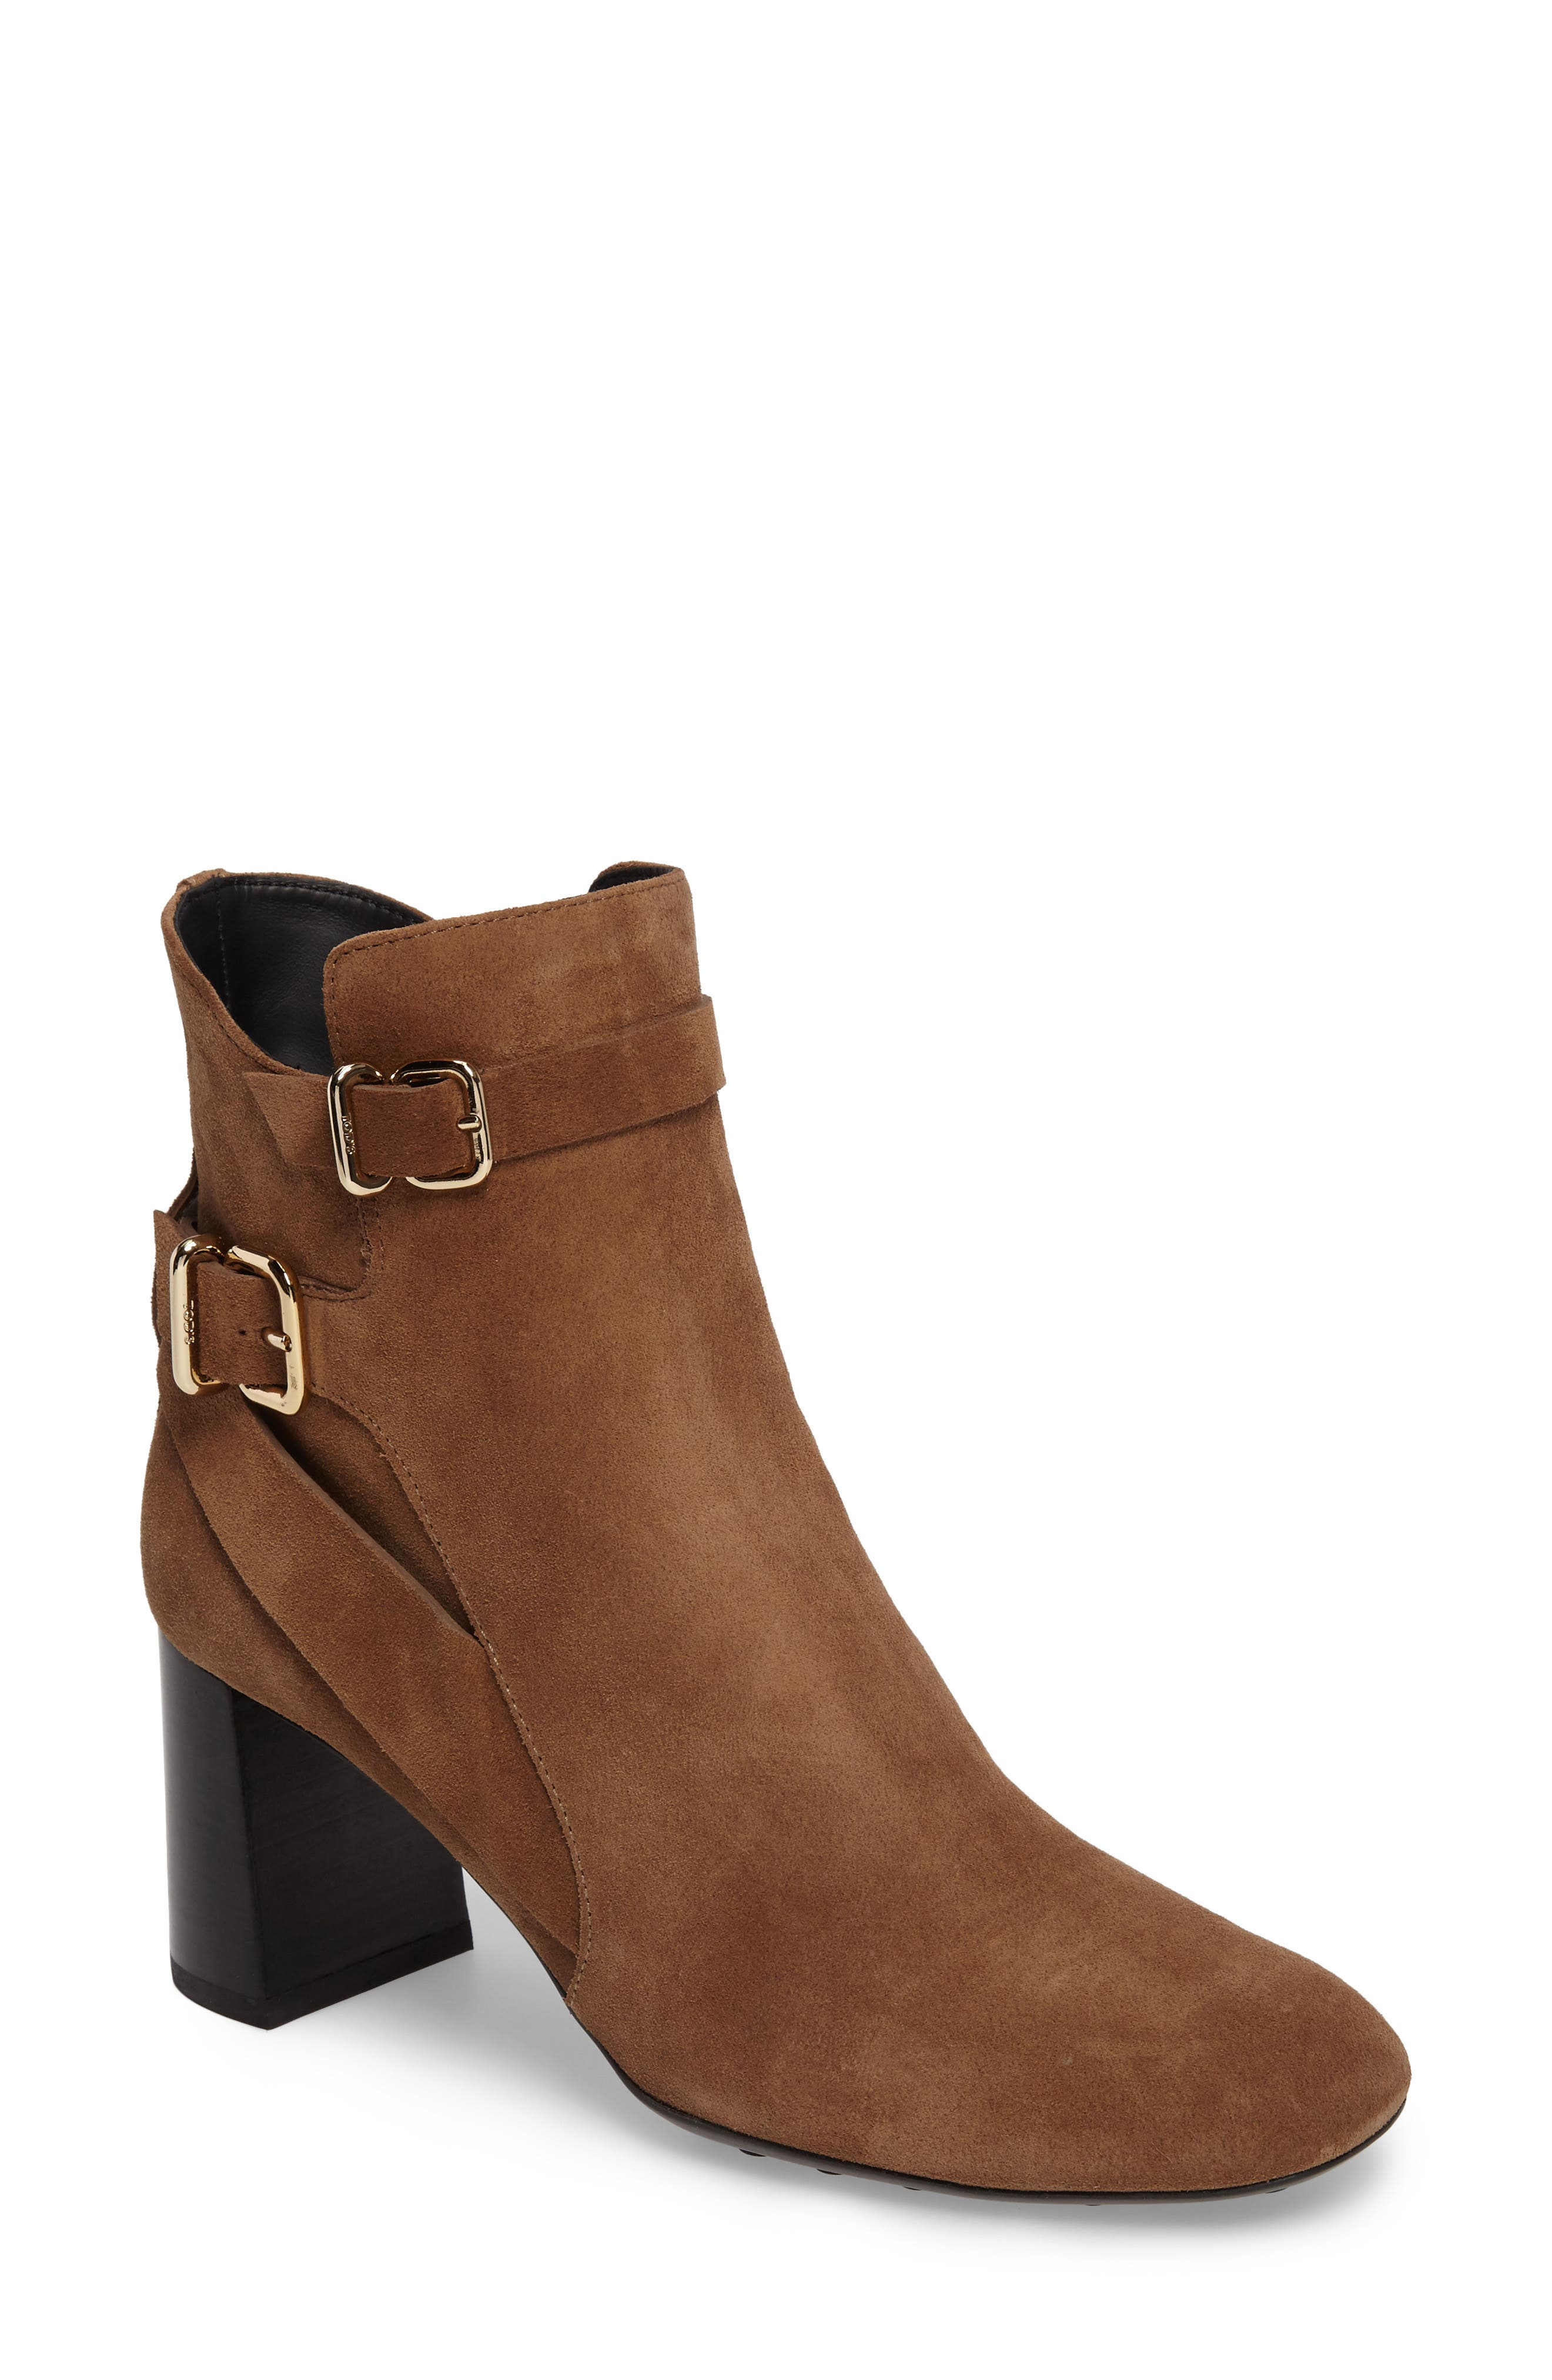 Alternate Image 1 Selected - Tods Double Belt Strap Bootie (Women)